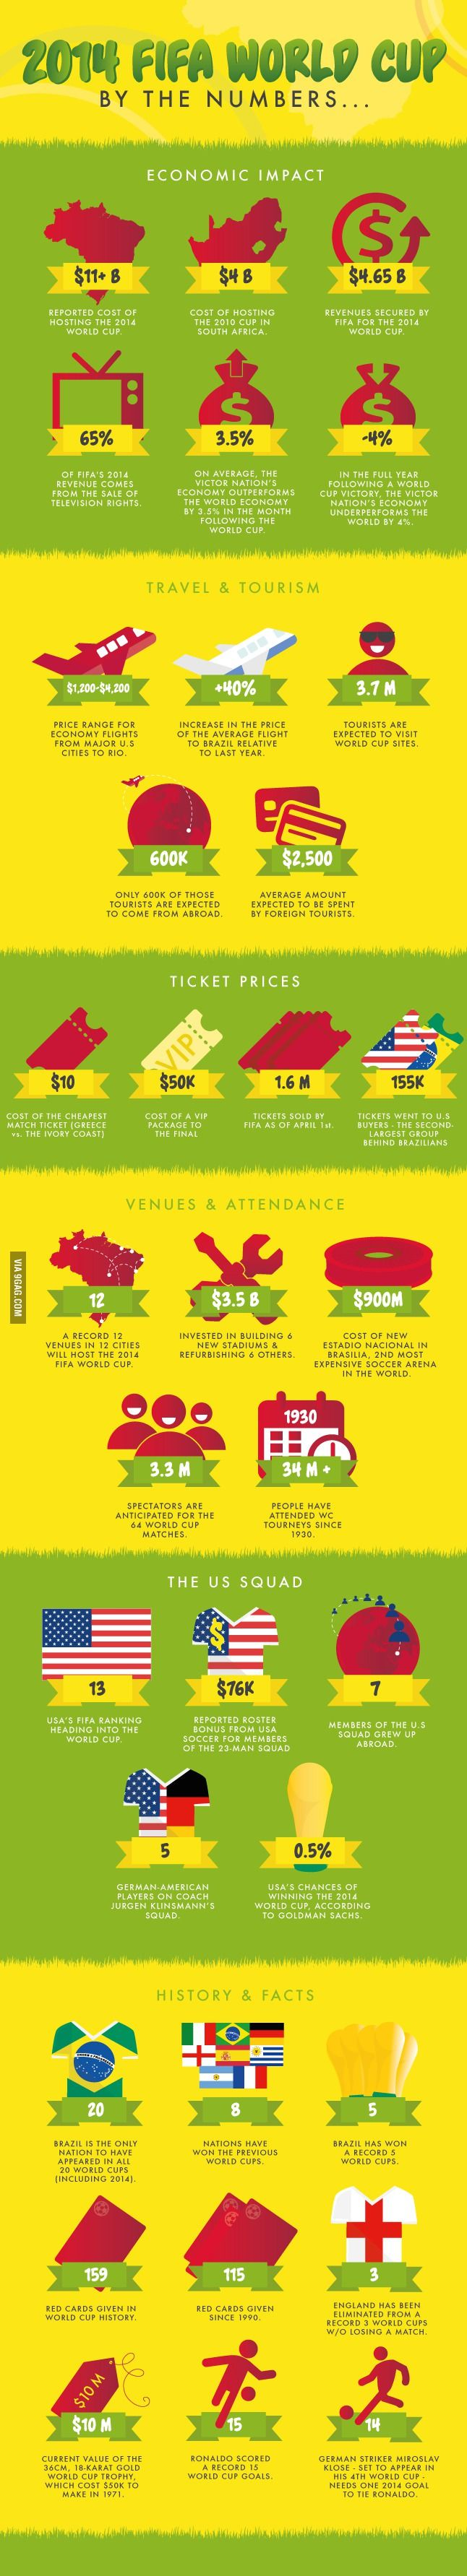 2014 World Cup By The Numbers